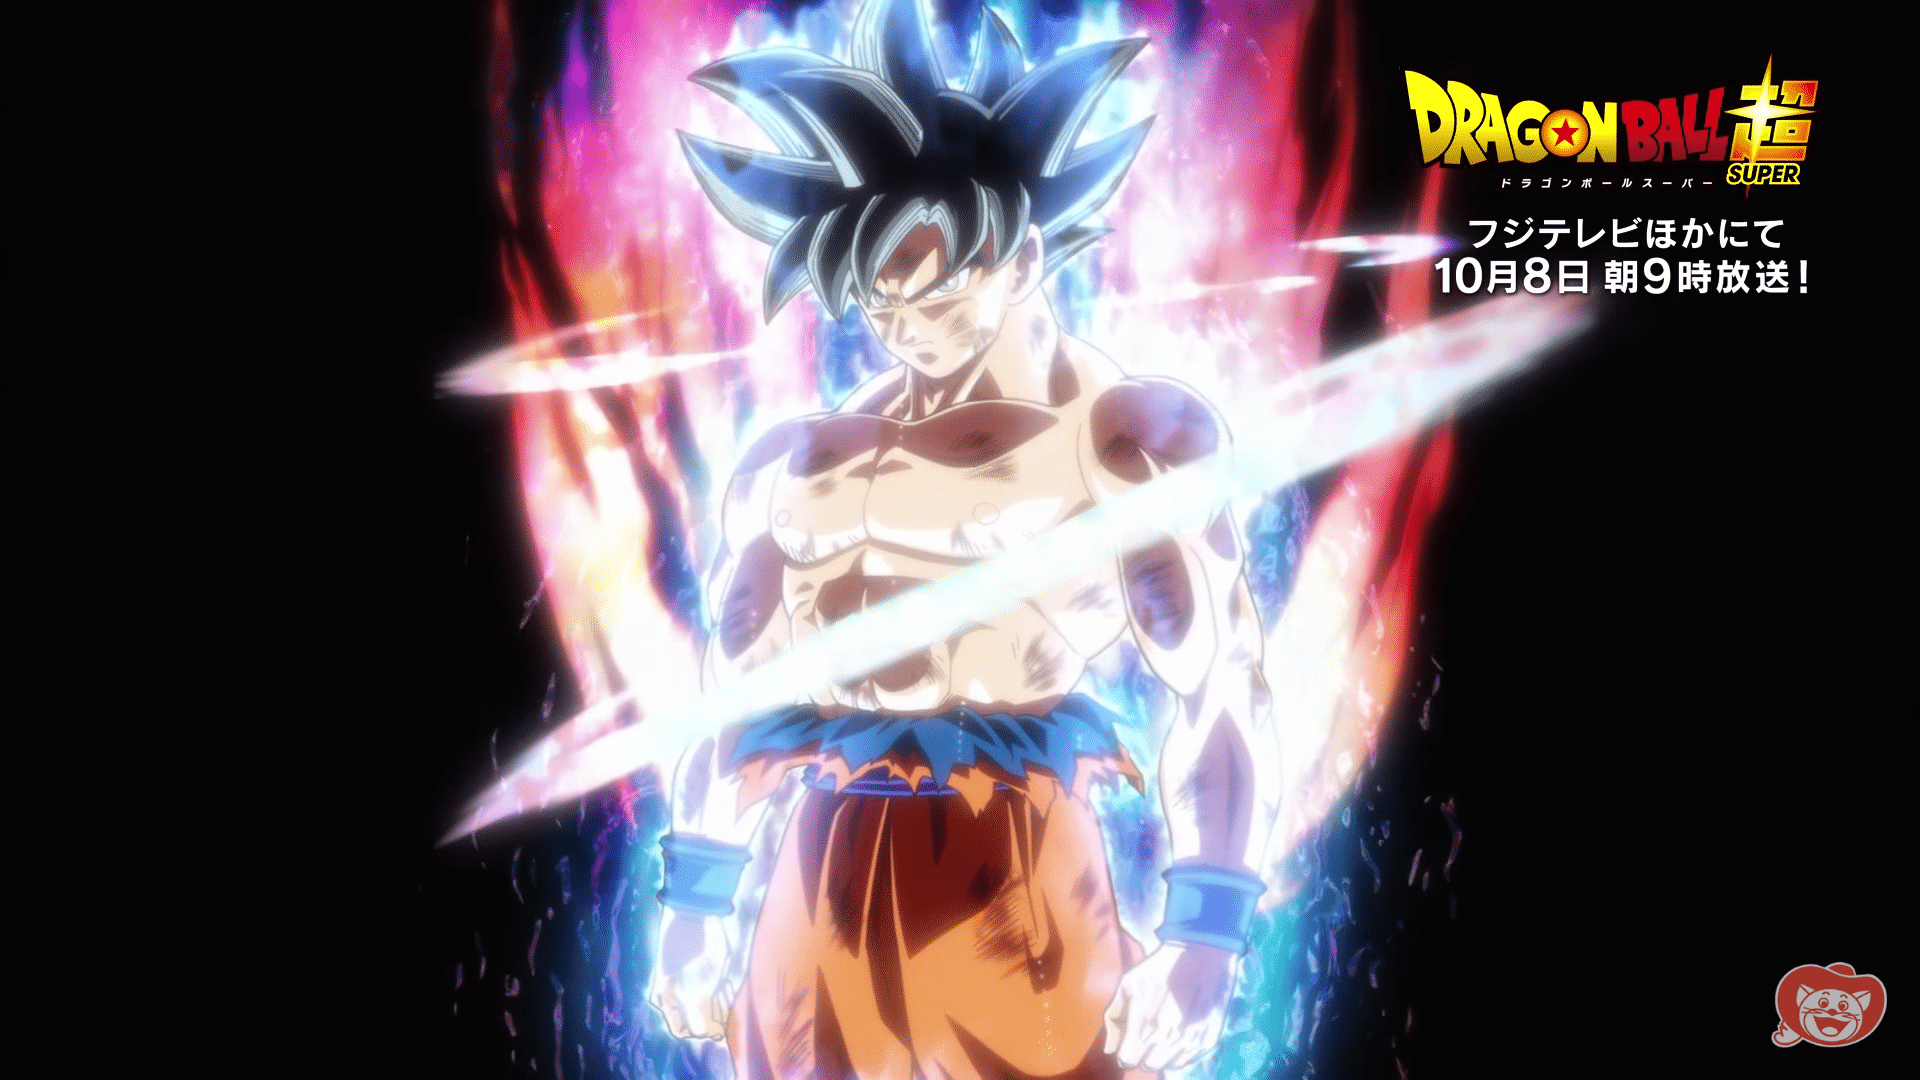 Will Goku be able to perfect attacks in Ultra Instinct?